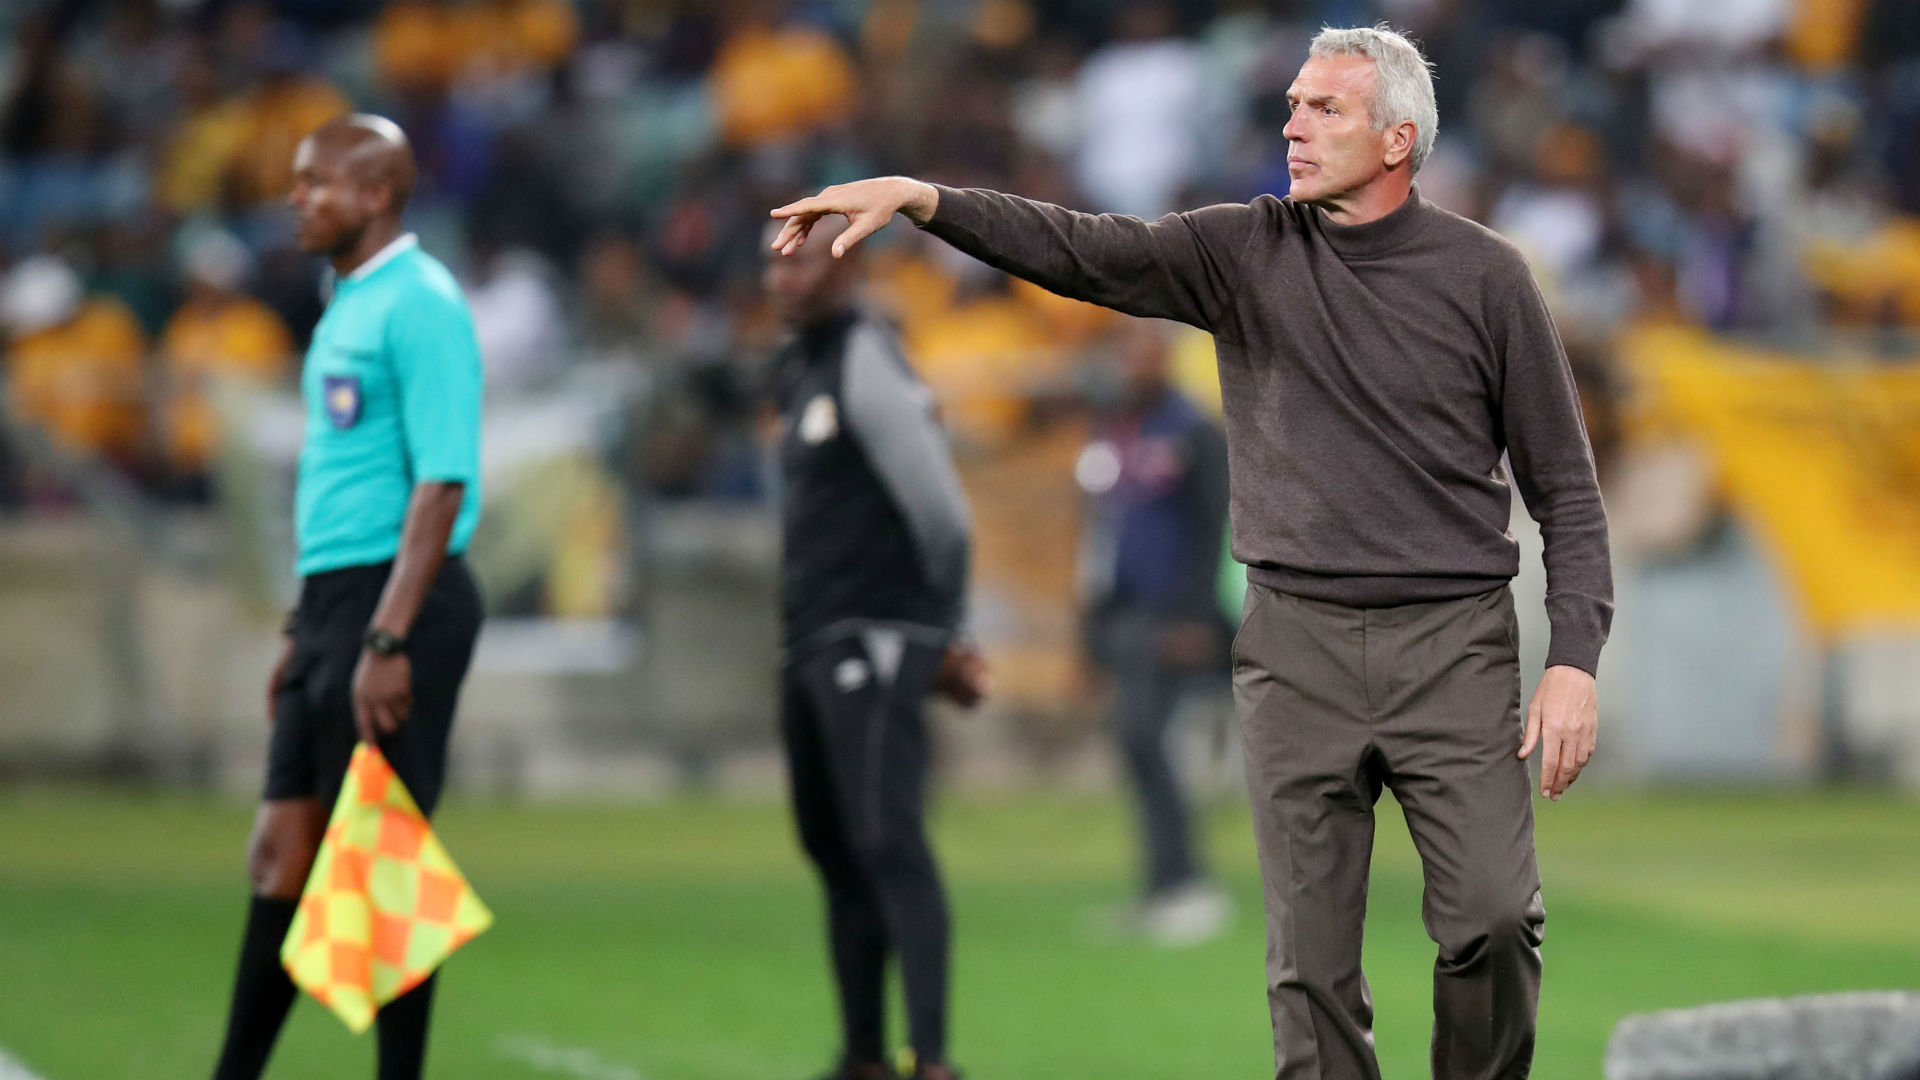 Telkom Knockout Cup: Kaizer Chiefs' Middendorp on how Orlando Pirates' Mokwena can grow